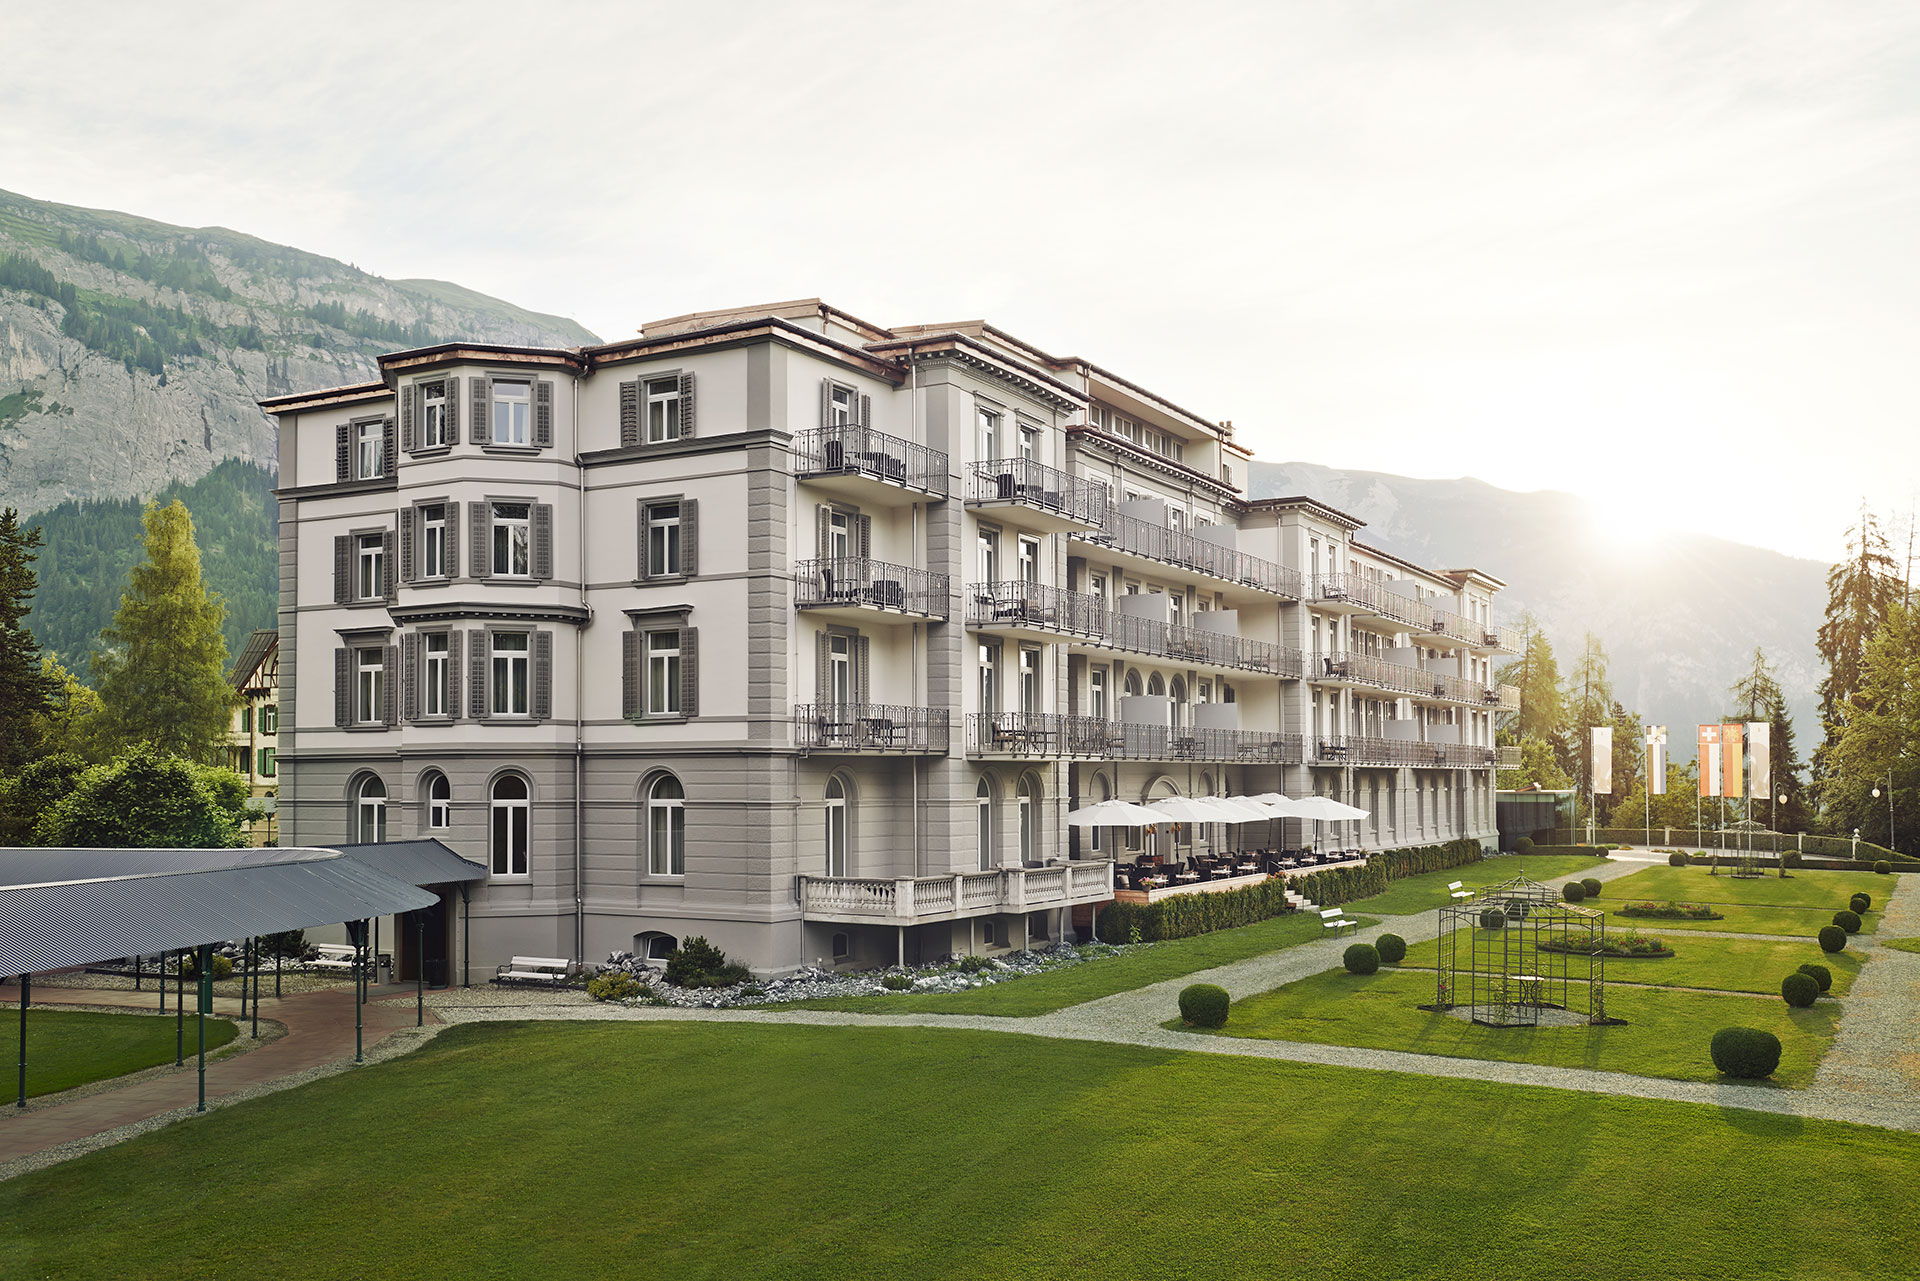 exterior shot of the Waldhaus Flims resort building and the surrounding grounds. The building is white with gray shutters. There are balconies at each window. The grounds are lush green grass with manicured bushes. In the background are the swiss alps.